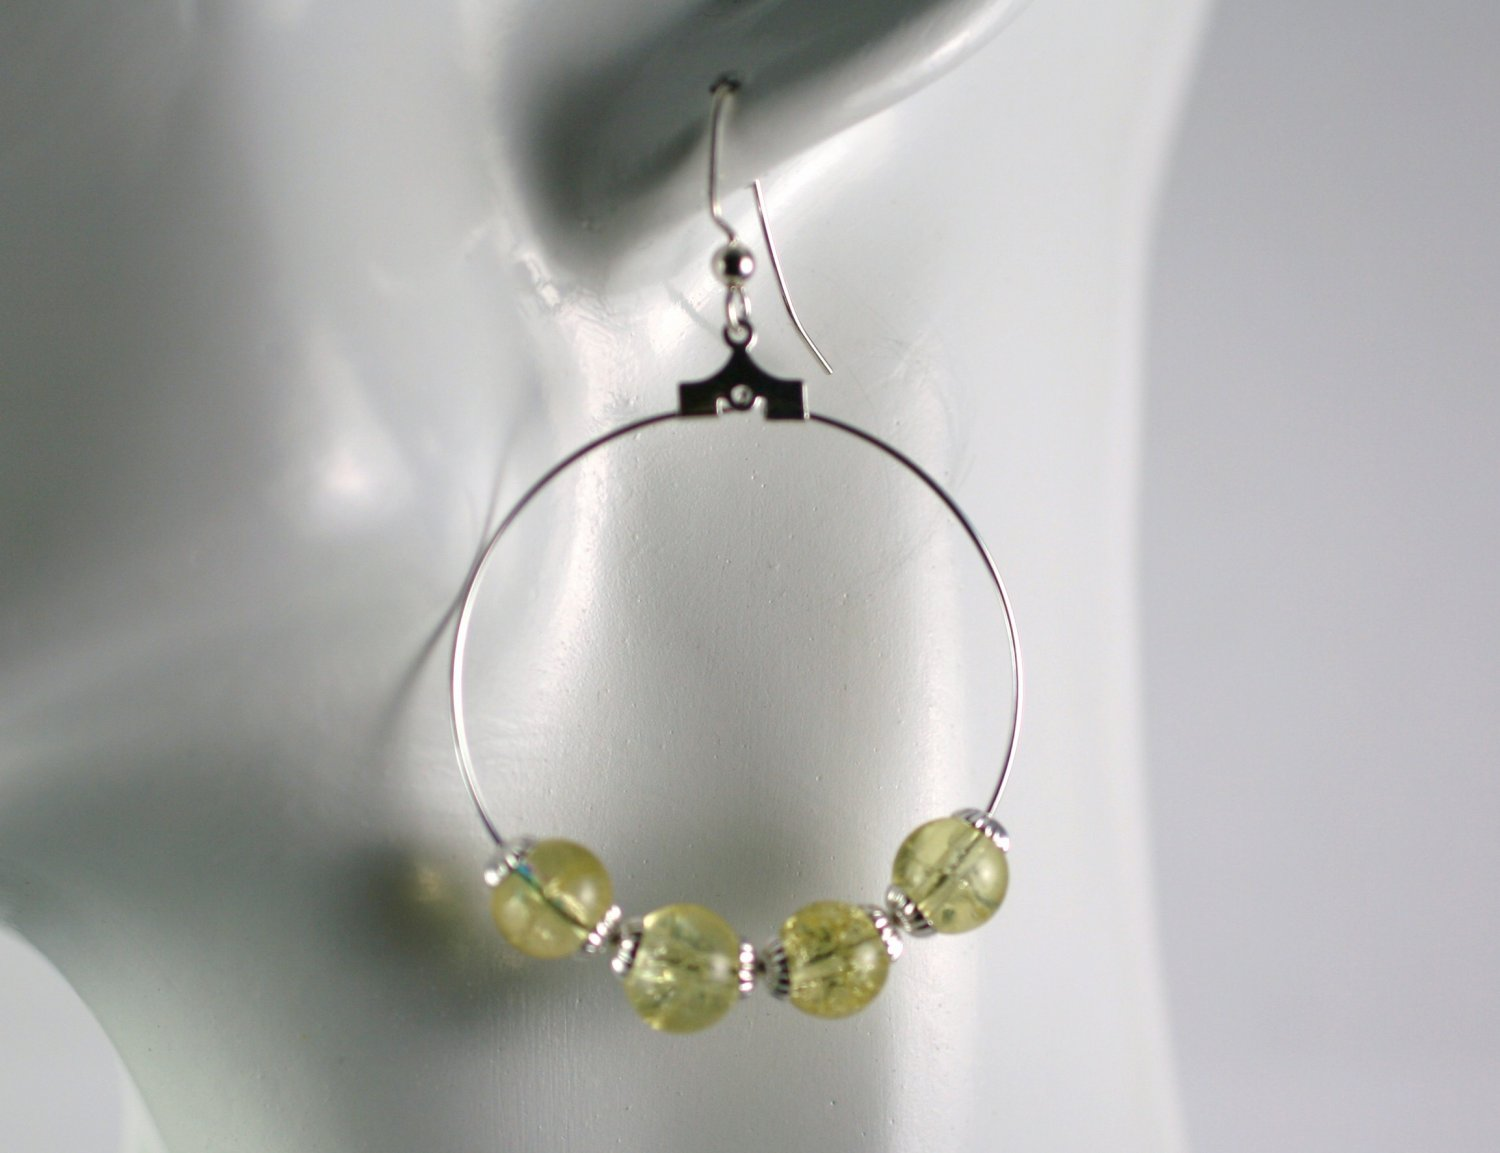 Silver Hoop Earrings with Yellow Crackled Glass Beads 1.5 in.  Handcrafted Jewelry